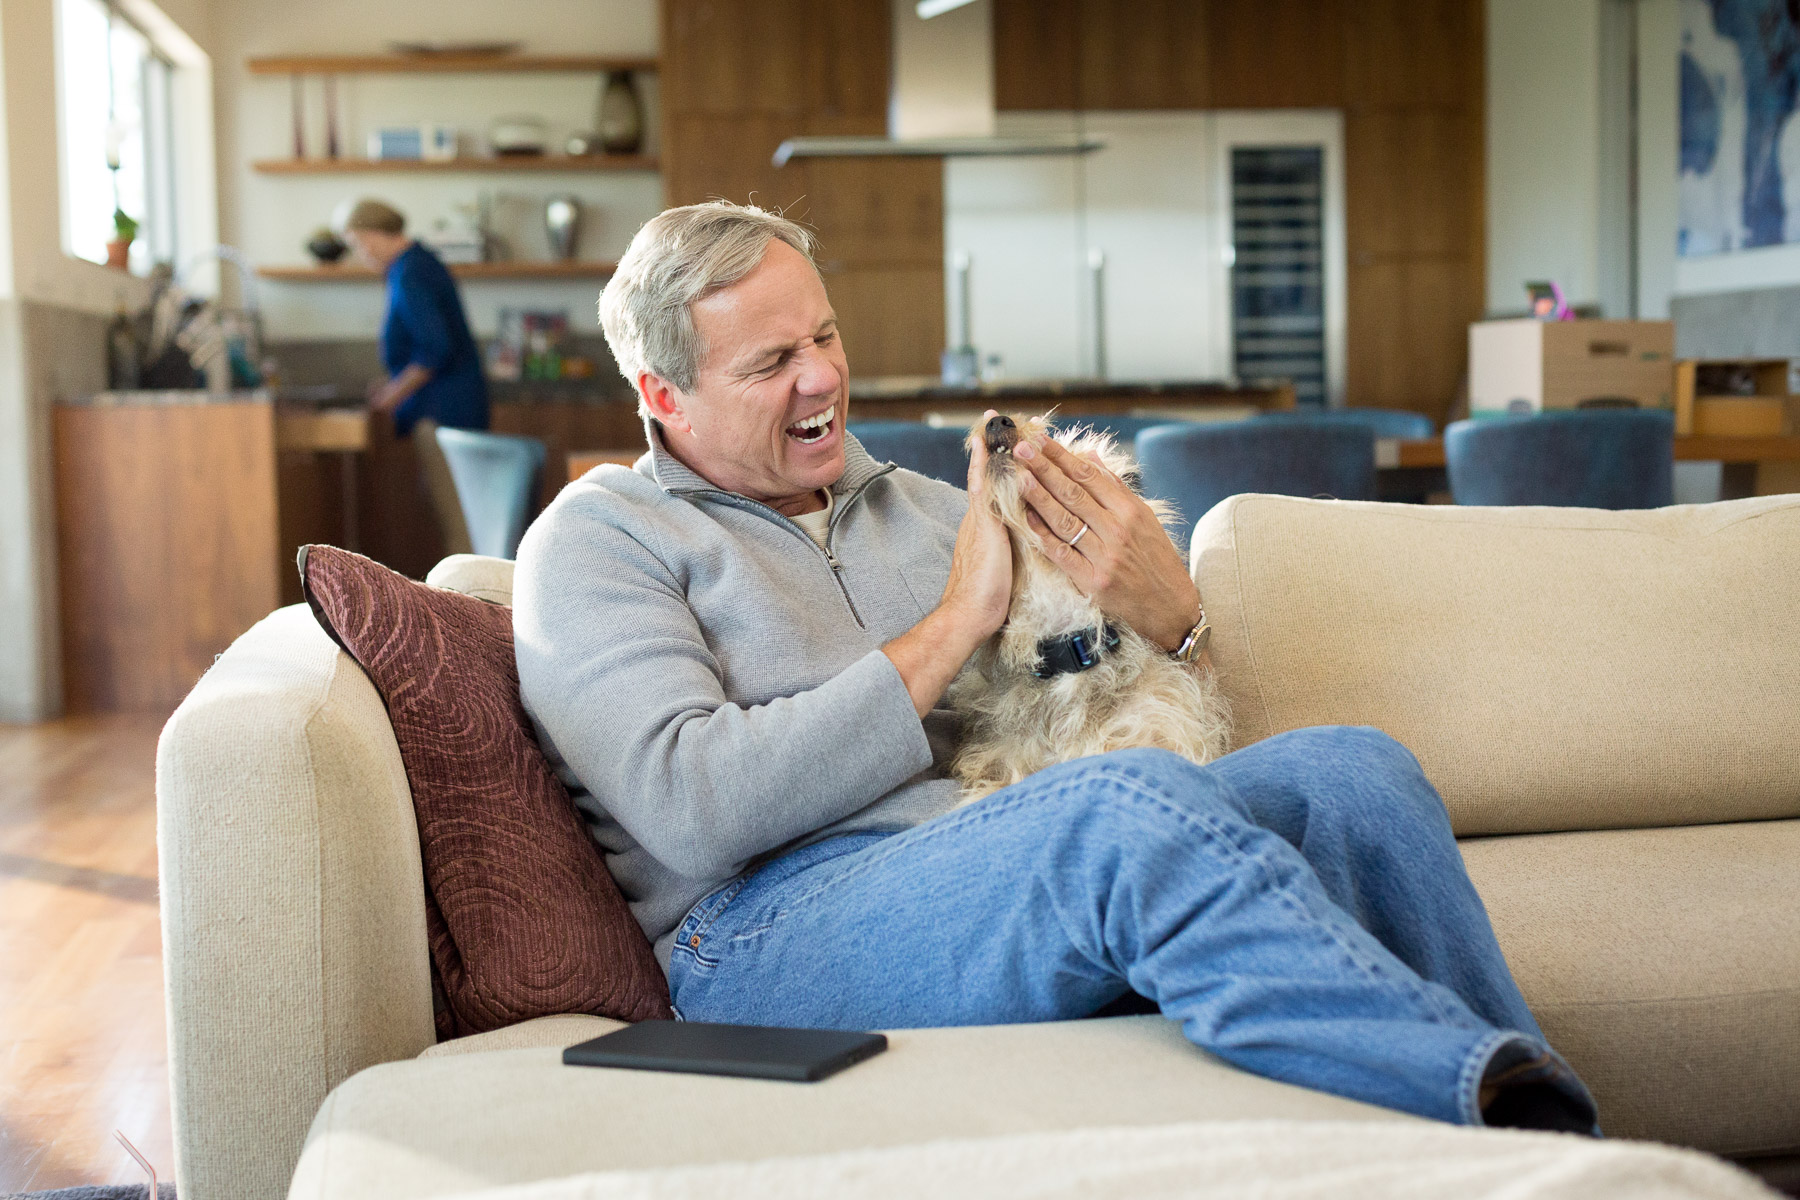 man-playing-with-mutt-dog-at-home.jpg